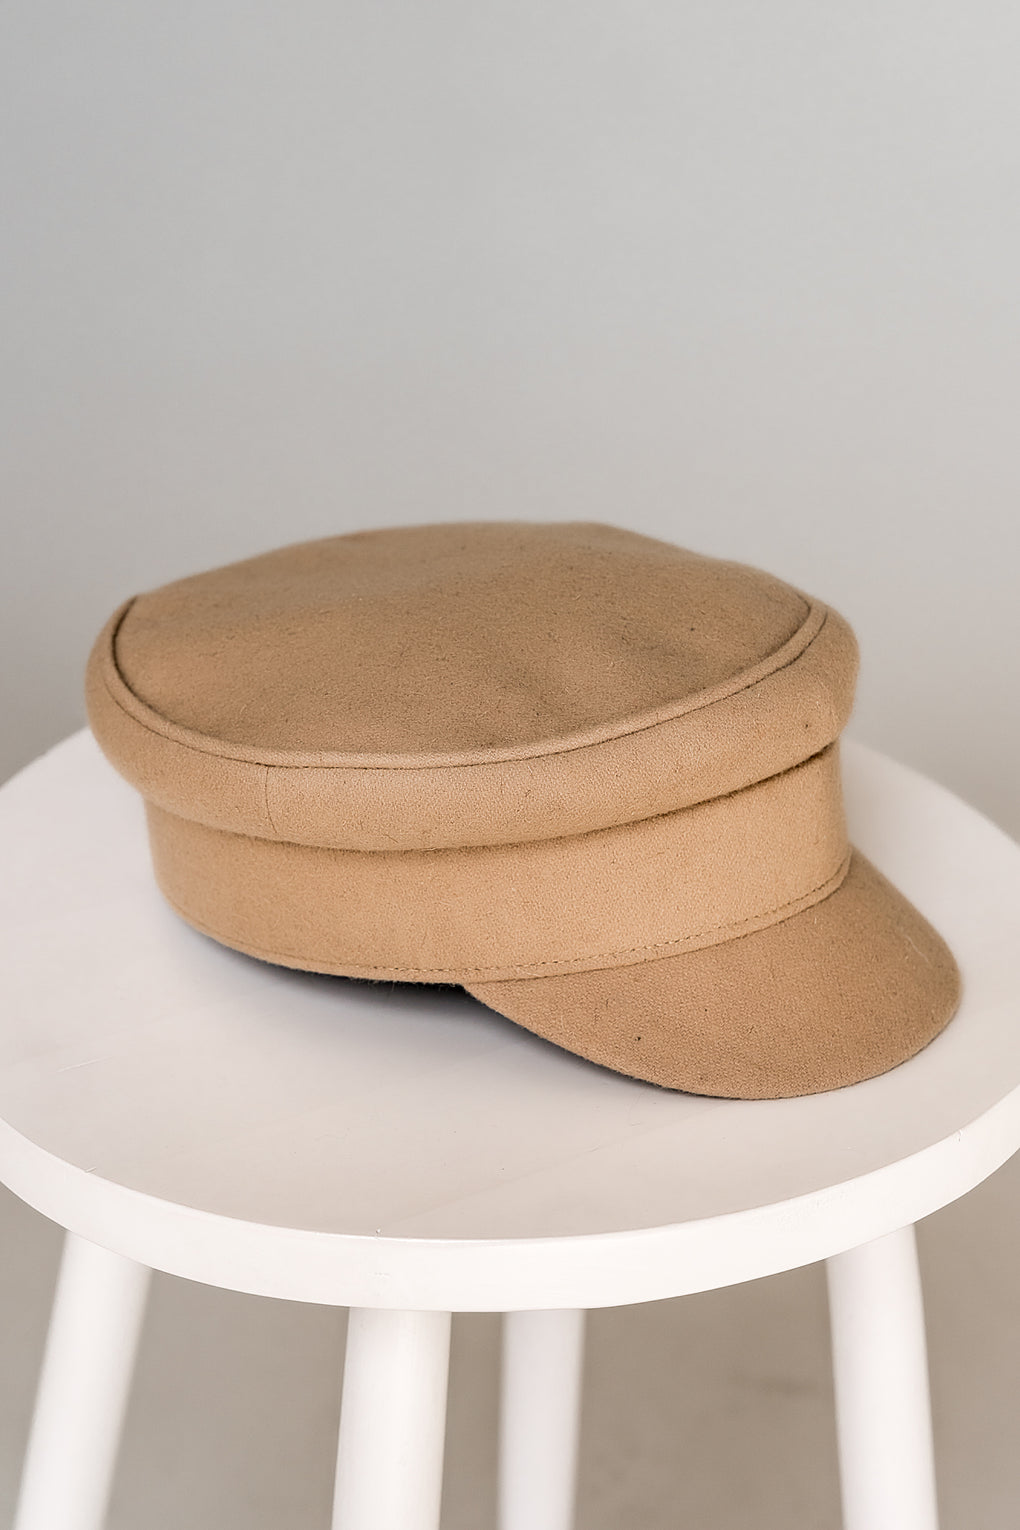 Globe-Trotter Conductor Hat